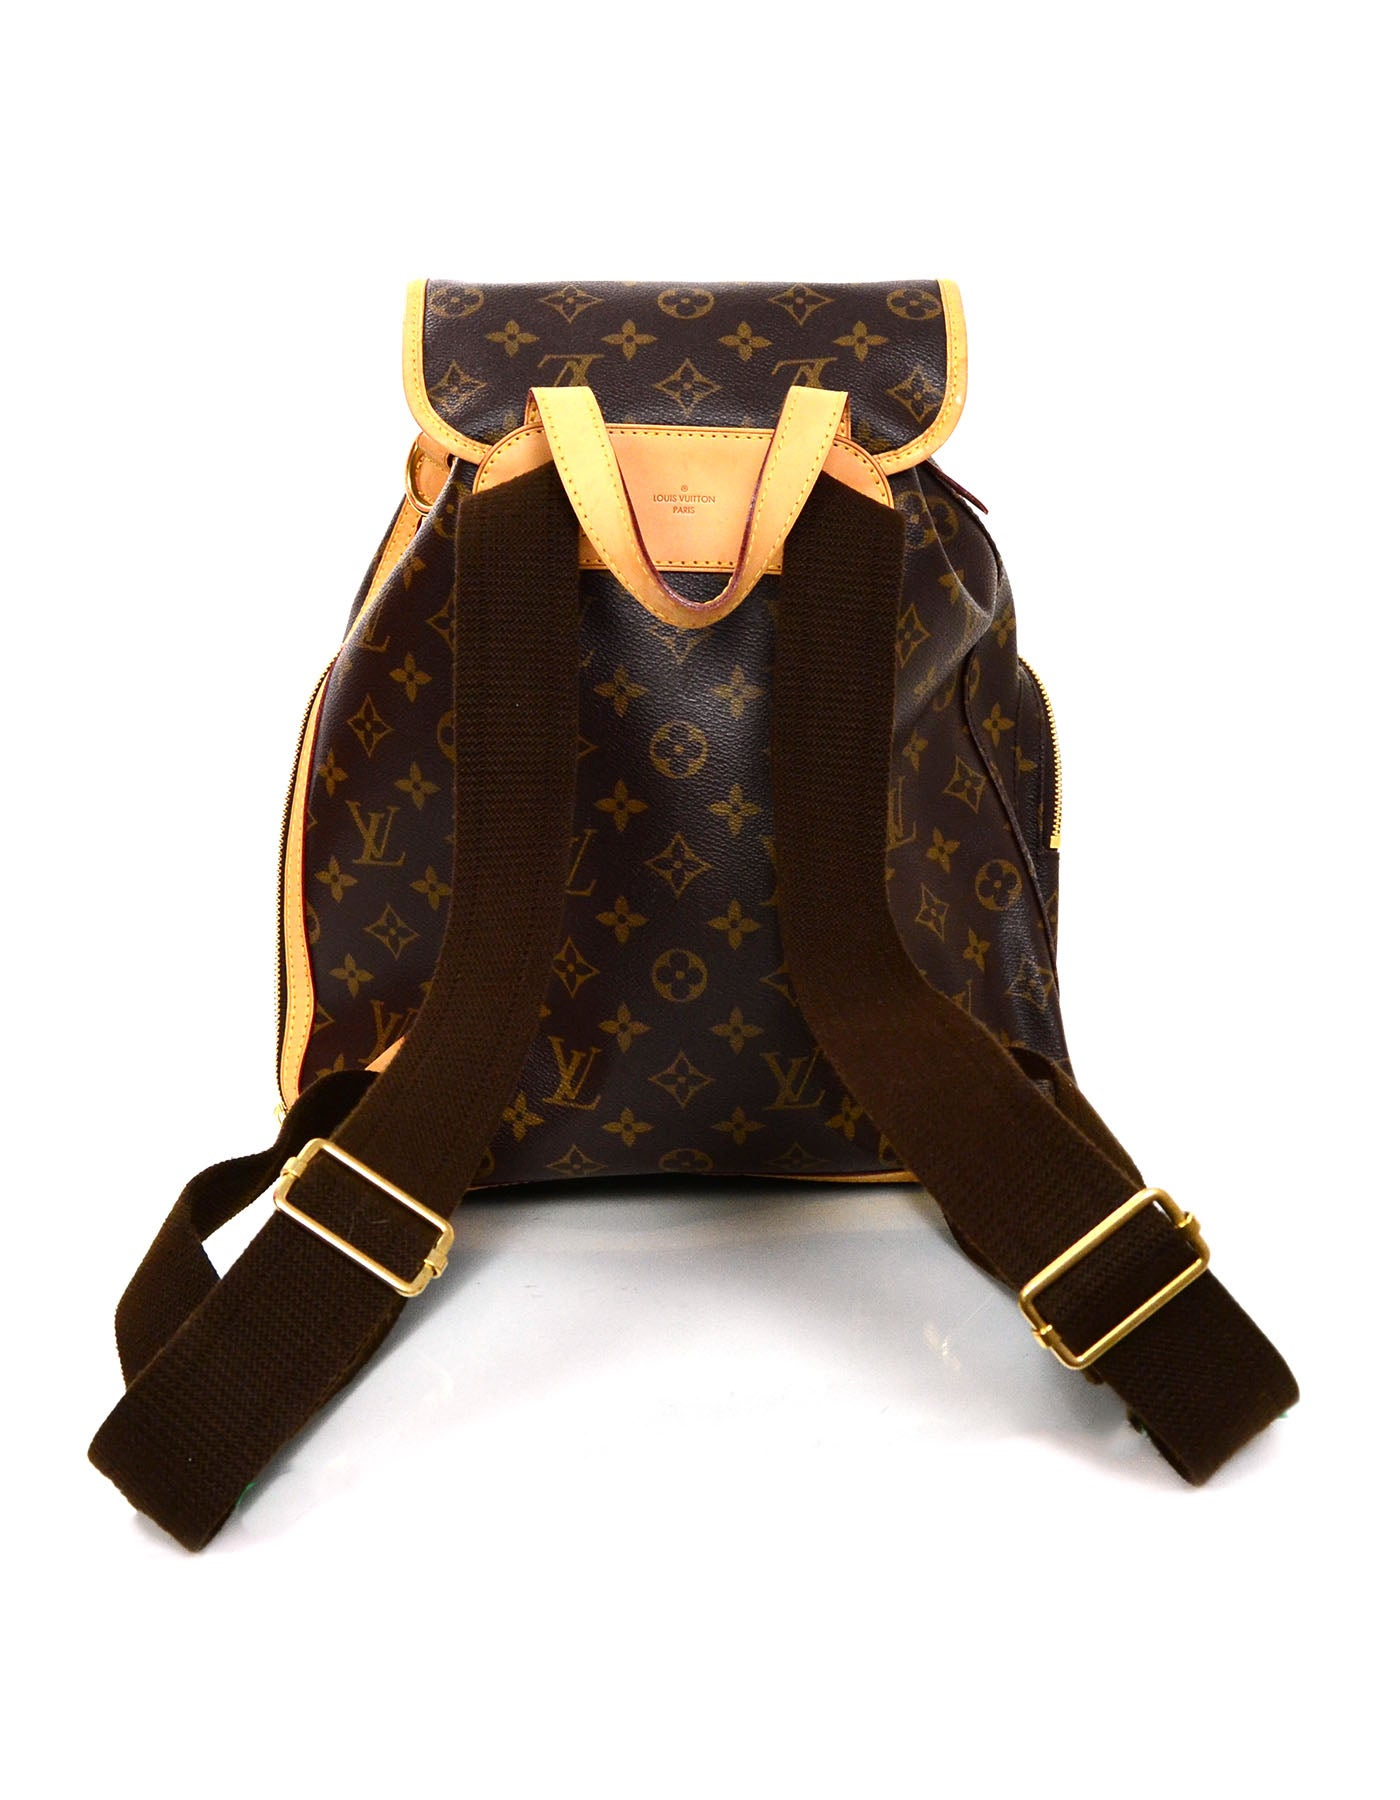 1b953db513d3 Louis Vuitton Monogram Bosphore Backpack Bag For Sale at 1stdibs